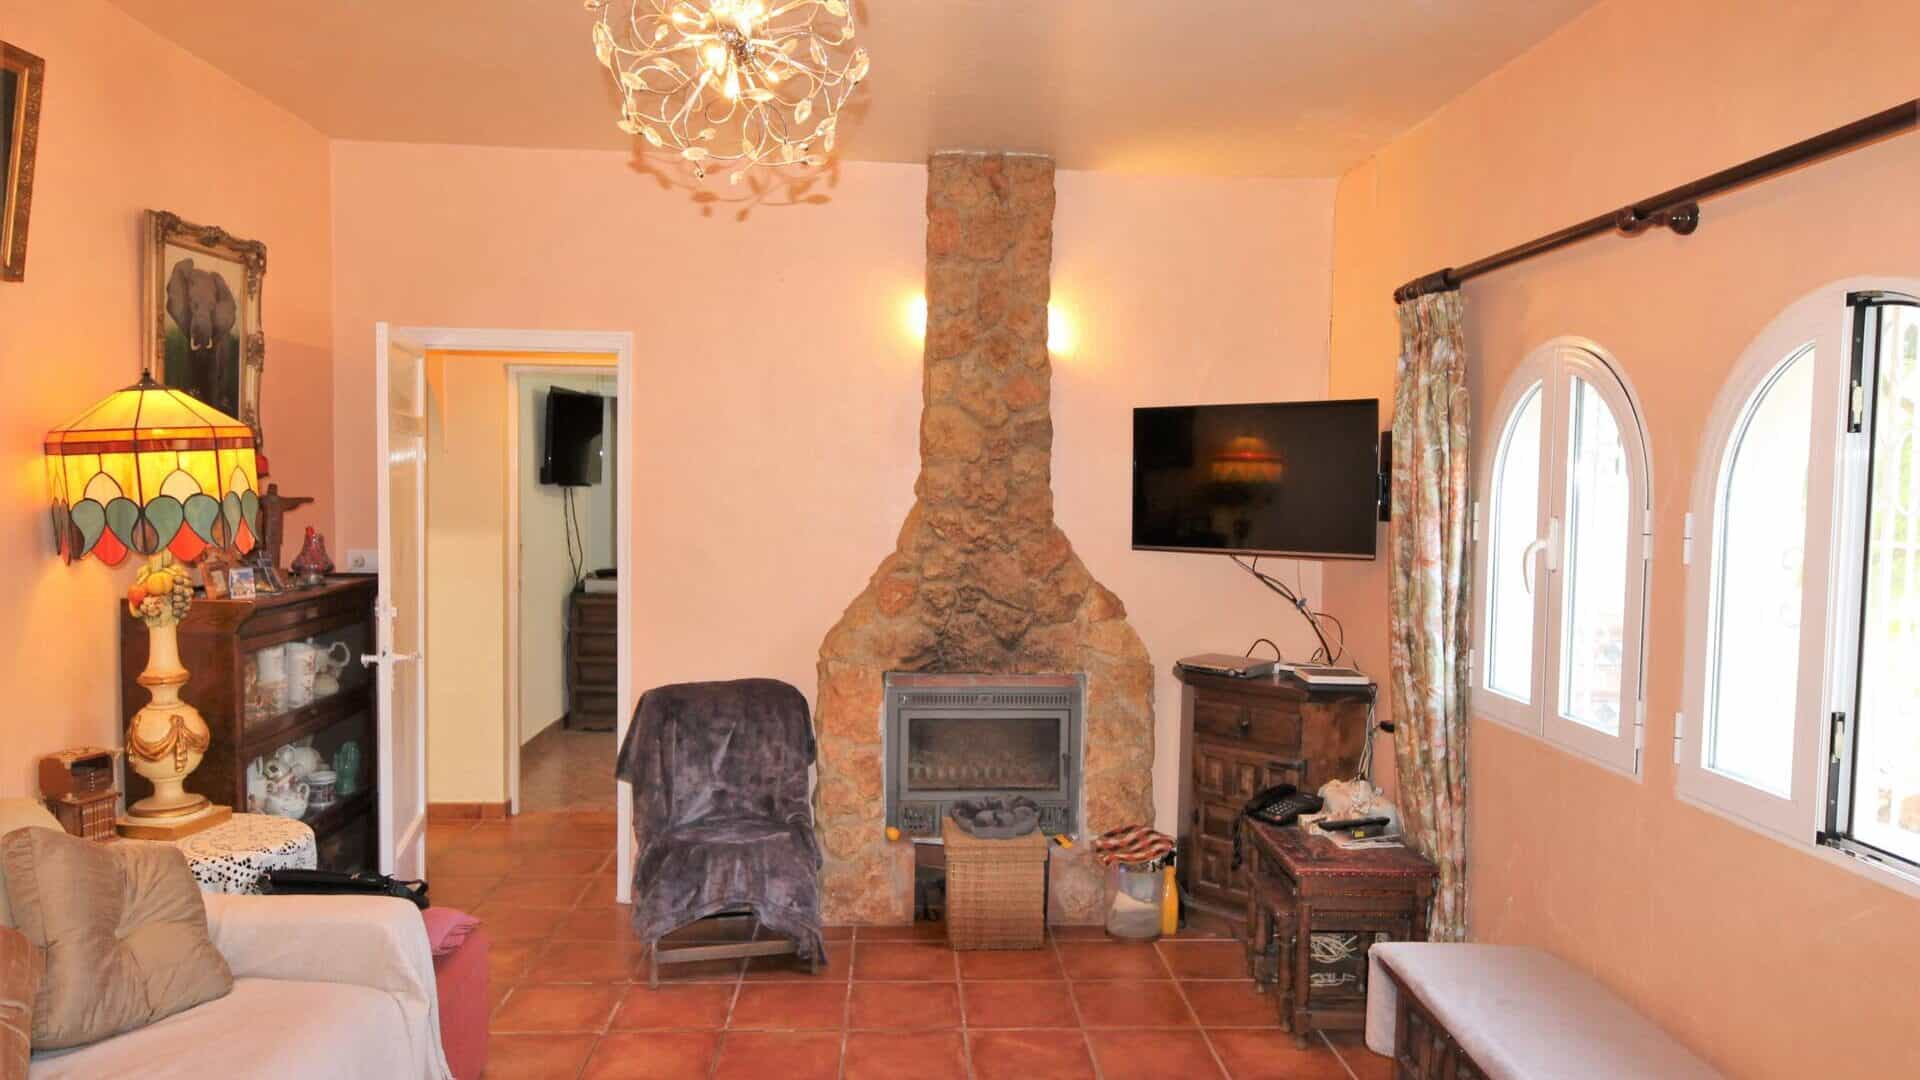 Appealing cosy family home near to a sandy beach